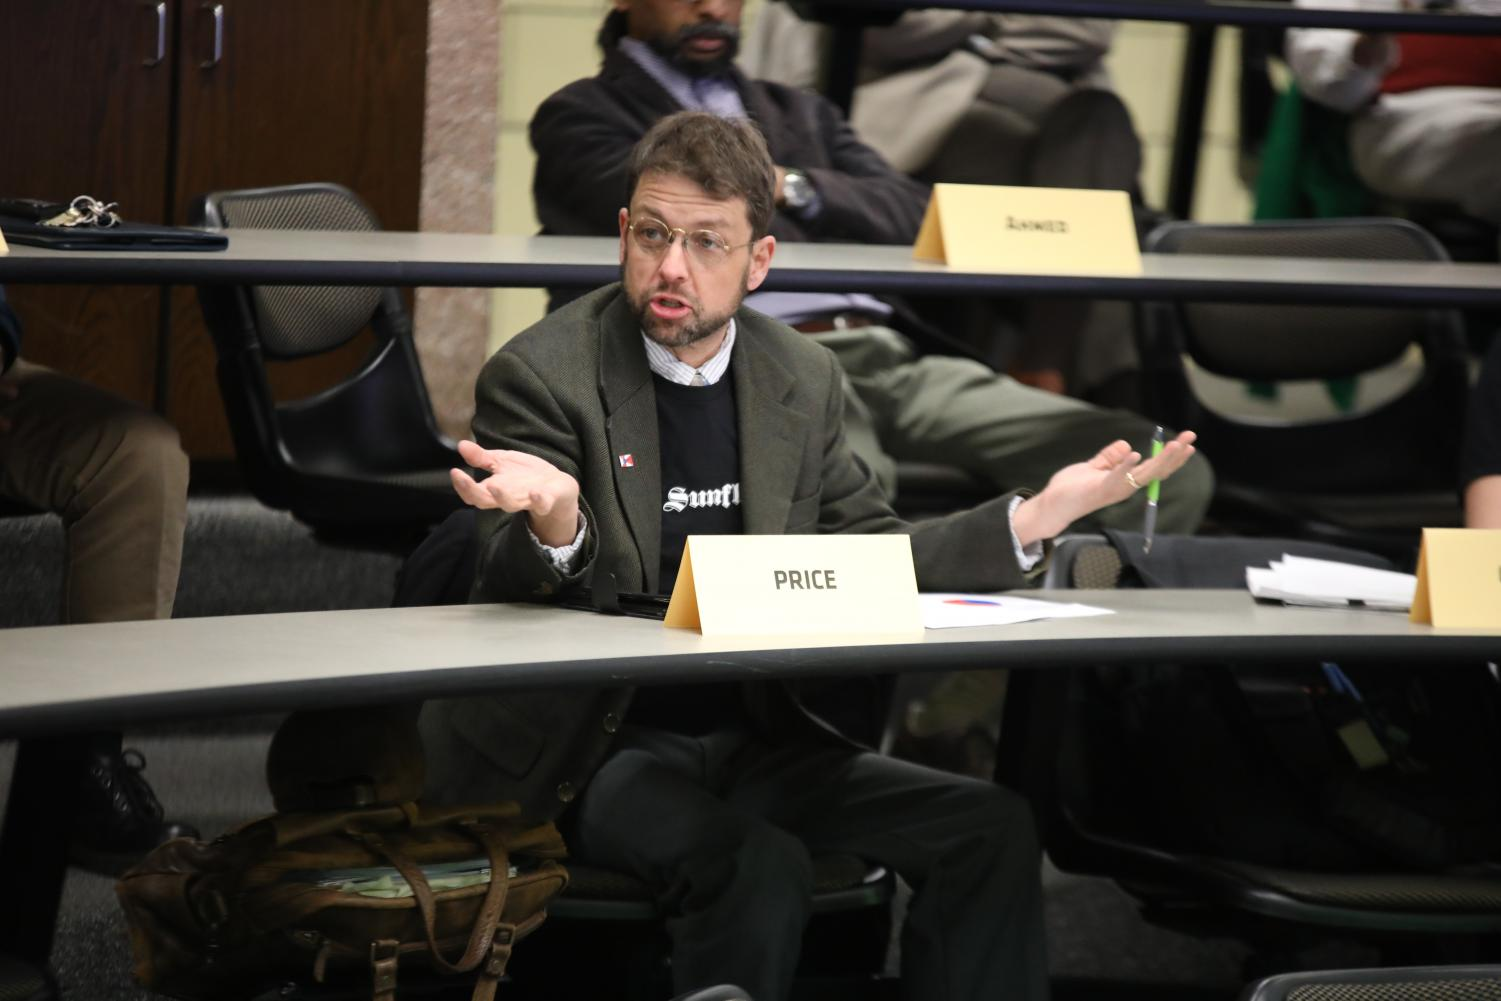 Jay Price speaks at a Faculty Senate meeting in March. Price, a humanities senator, said